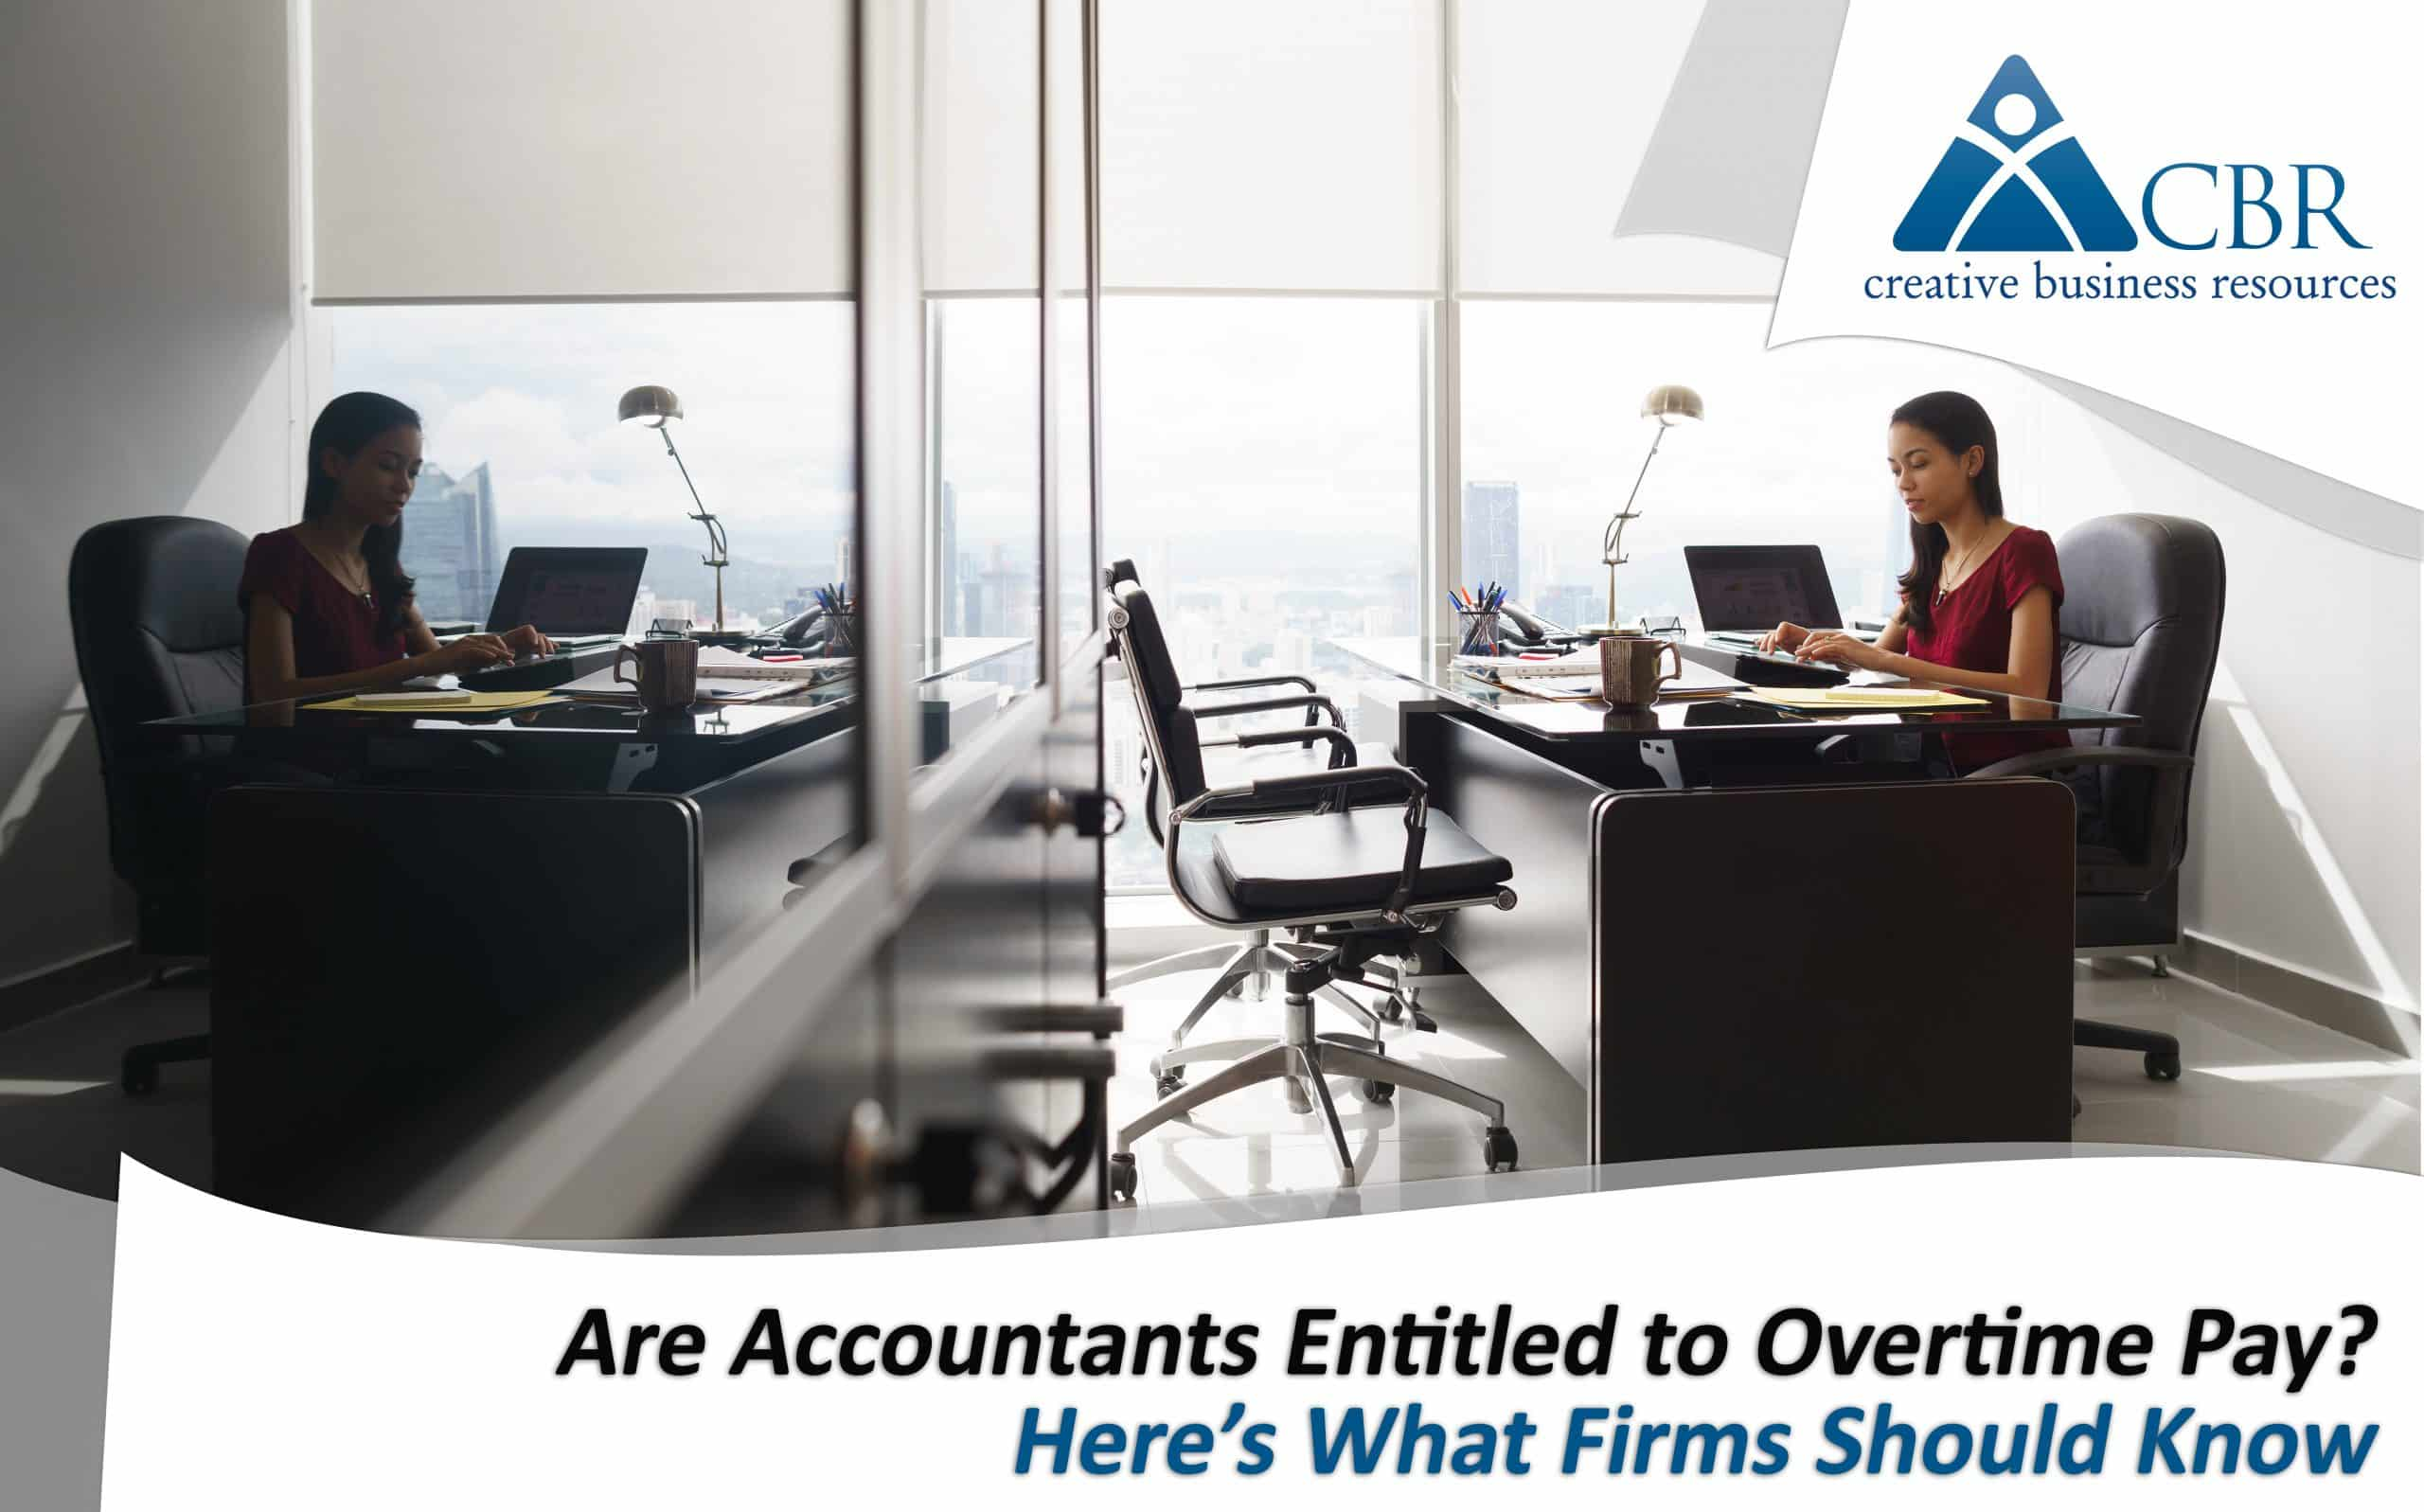 Are Accountants Entitled to Overtime Pay? Here's What Firms Should Know